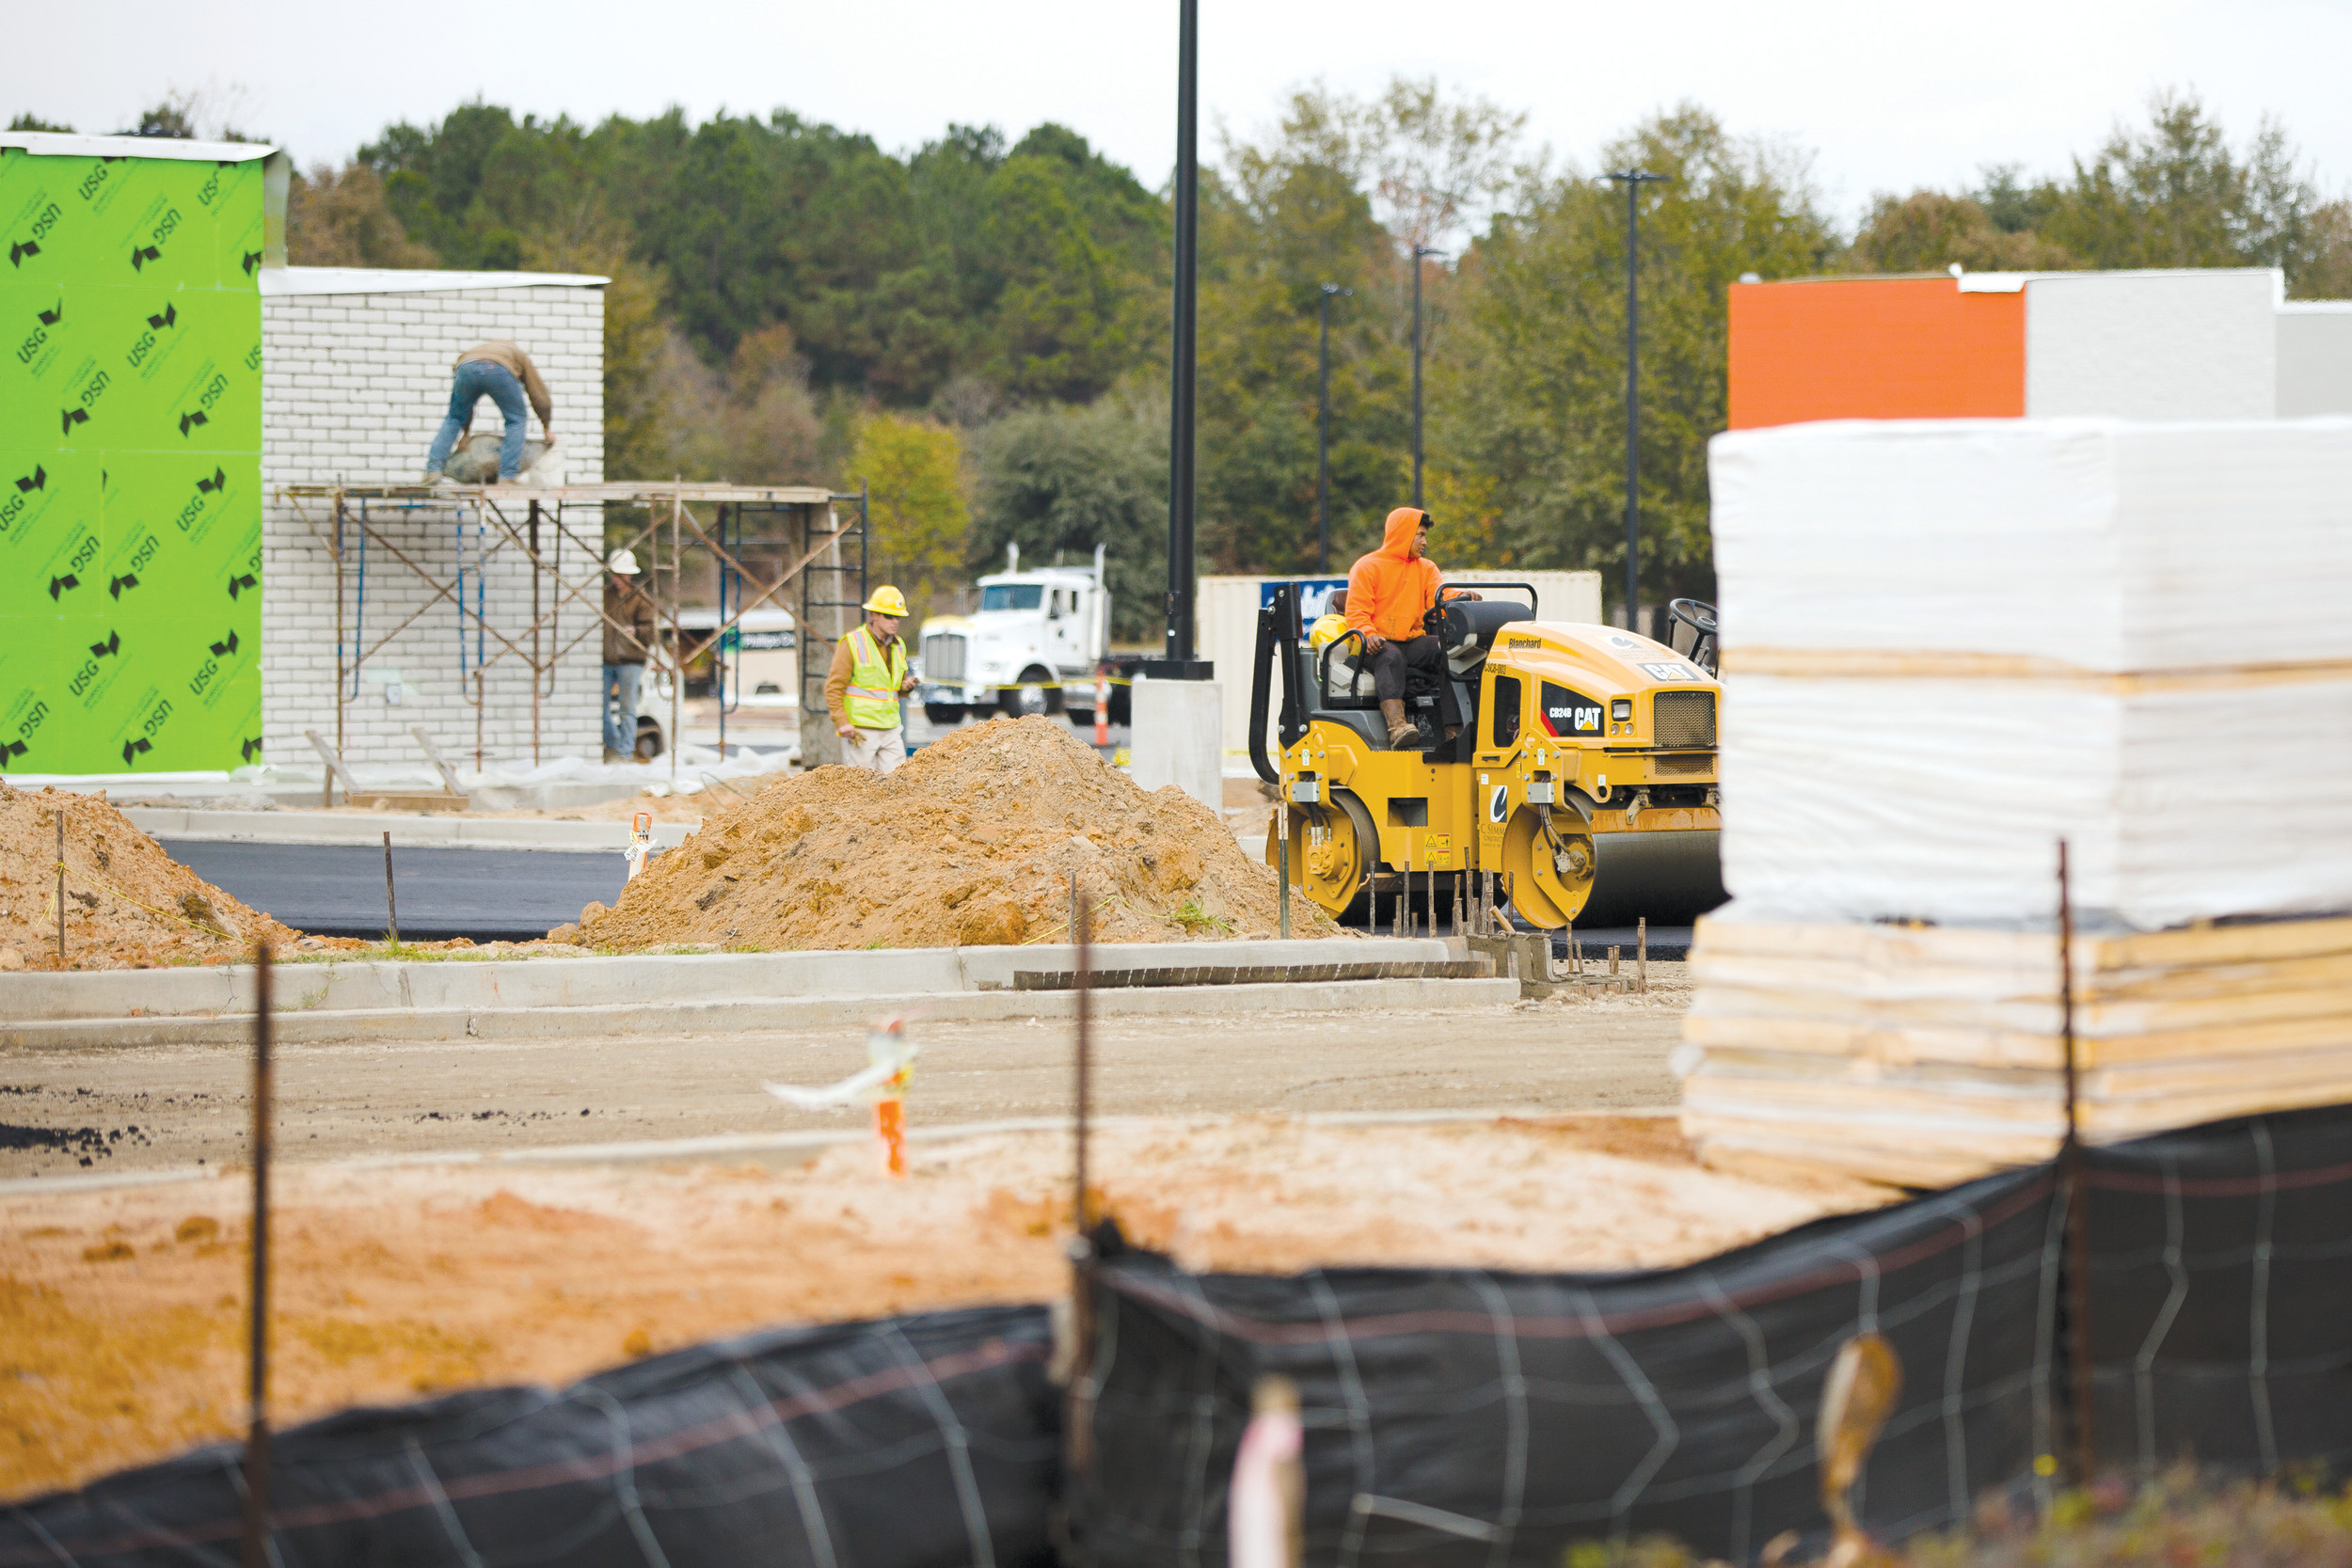 Walmart hiring 125 for new store in Sumter | The Sumter Item